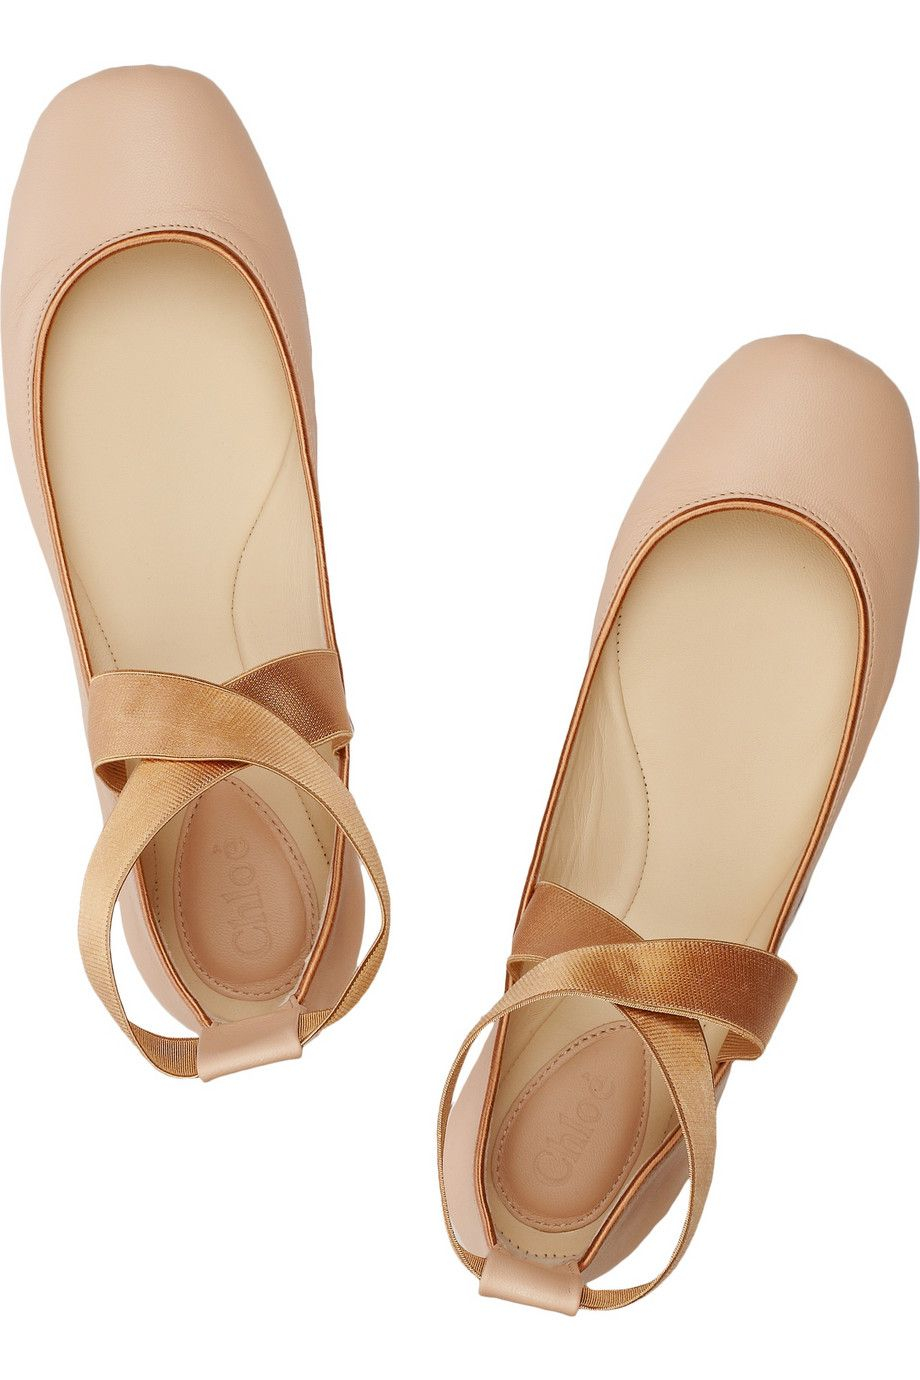 cf0308c3d Chloé | Leather ballet flats | NET-A-PORTER.COM Oh how I love these!! Too  bad they are so out of my price range